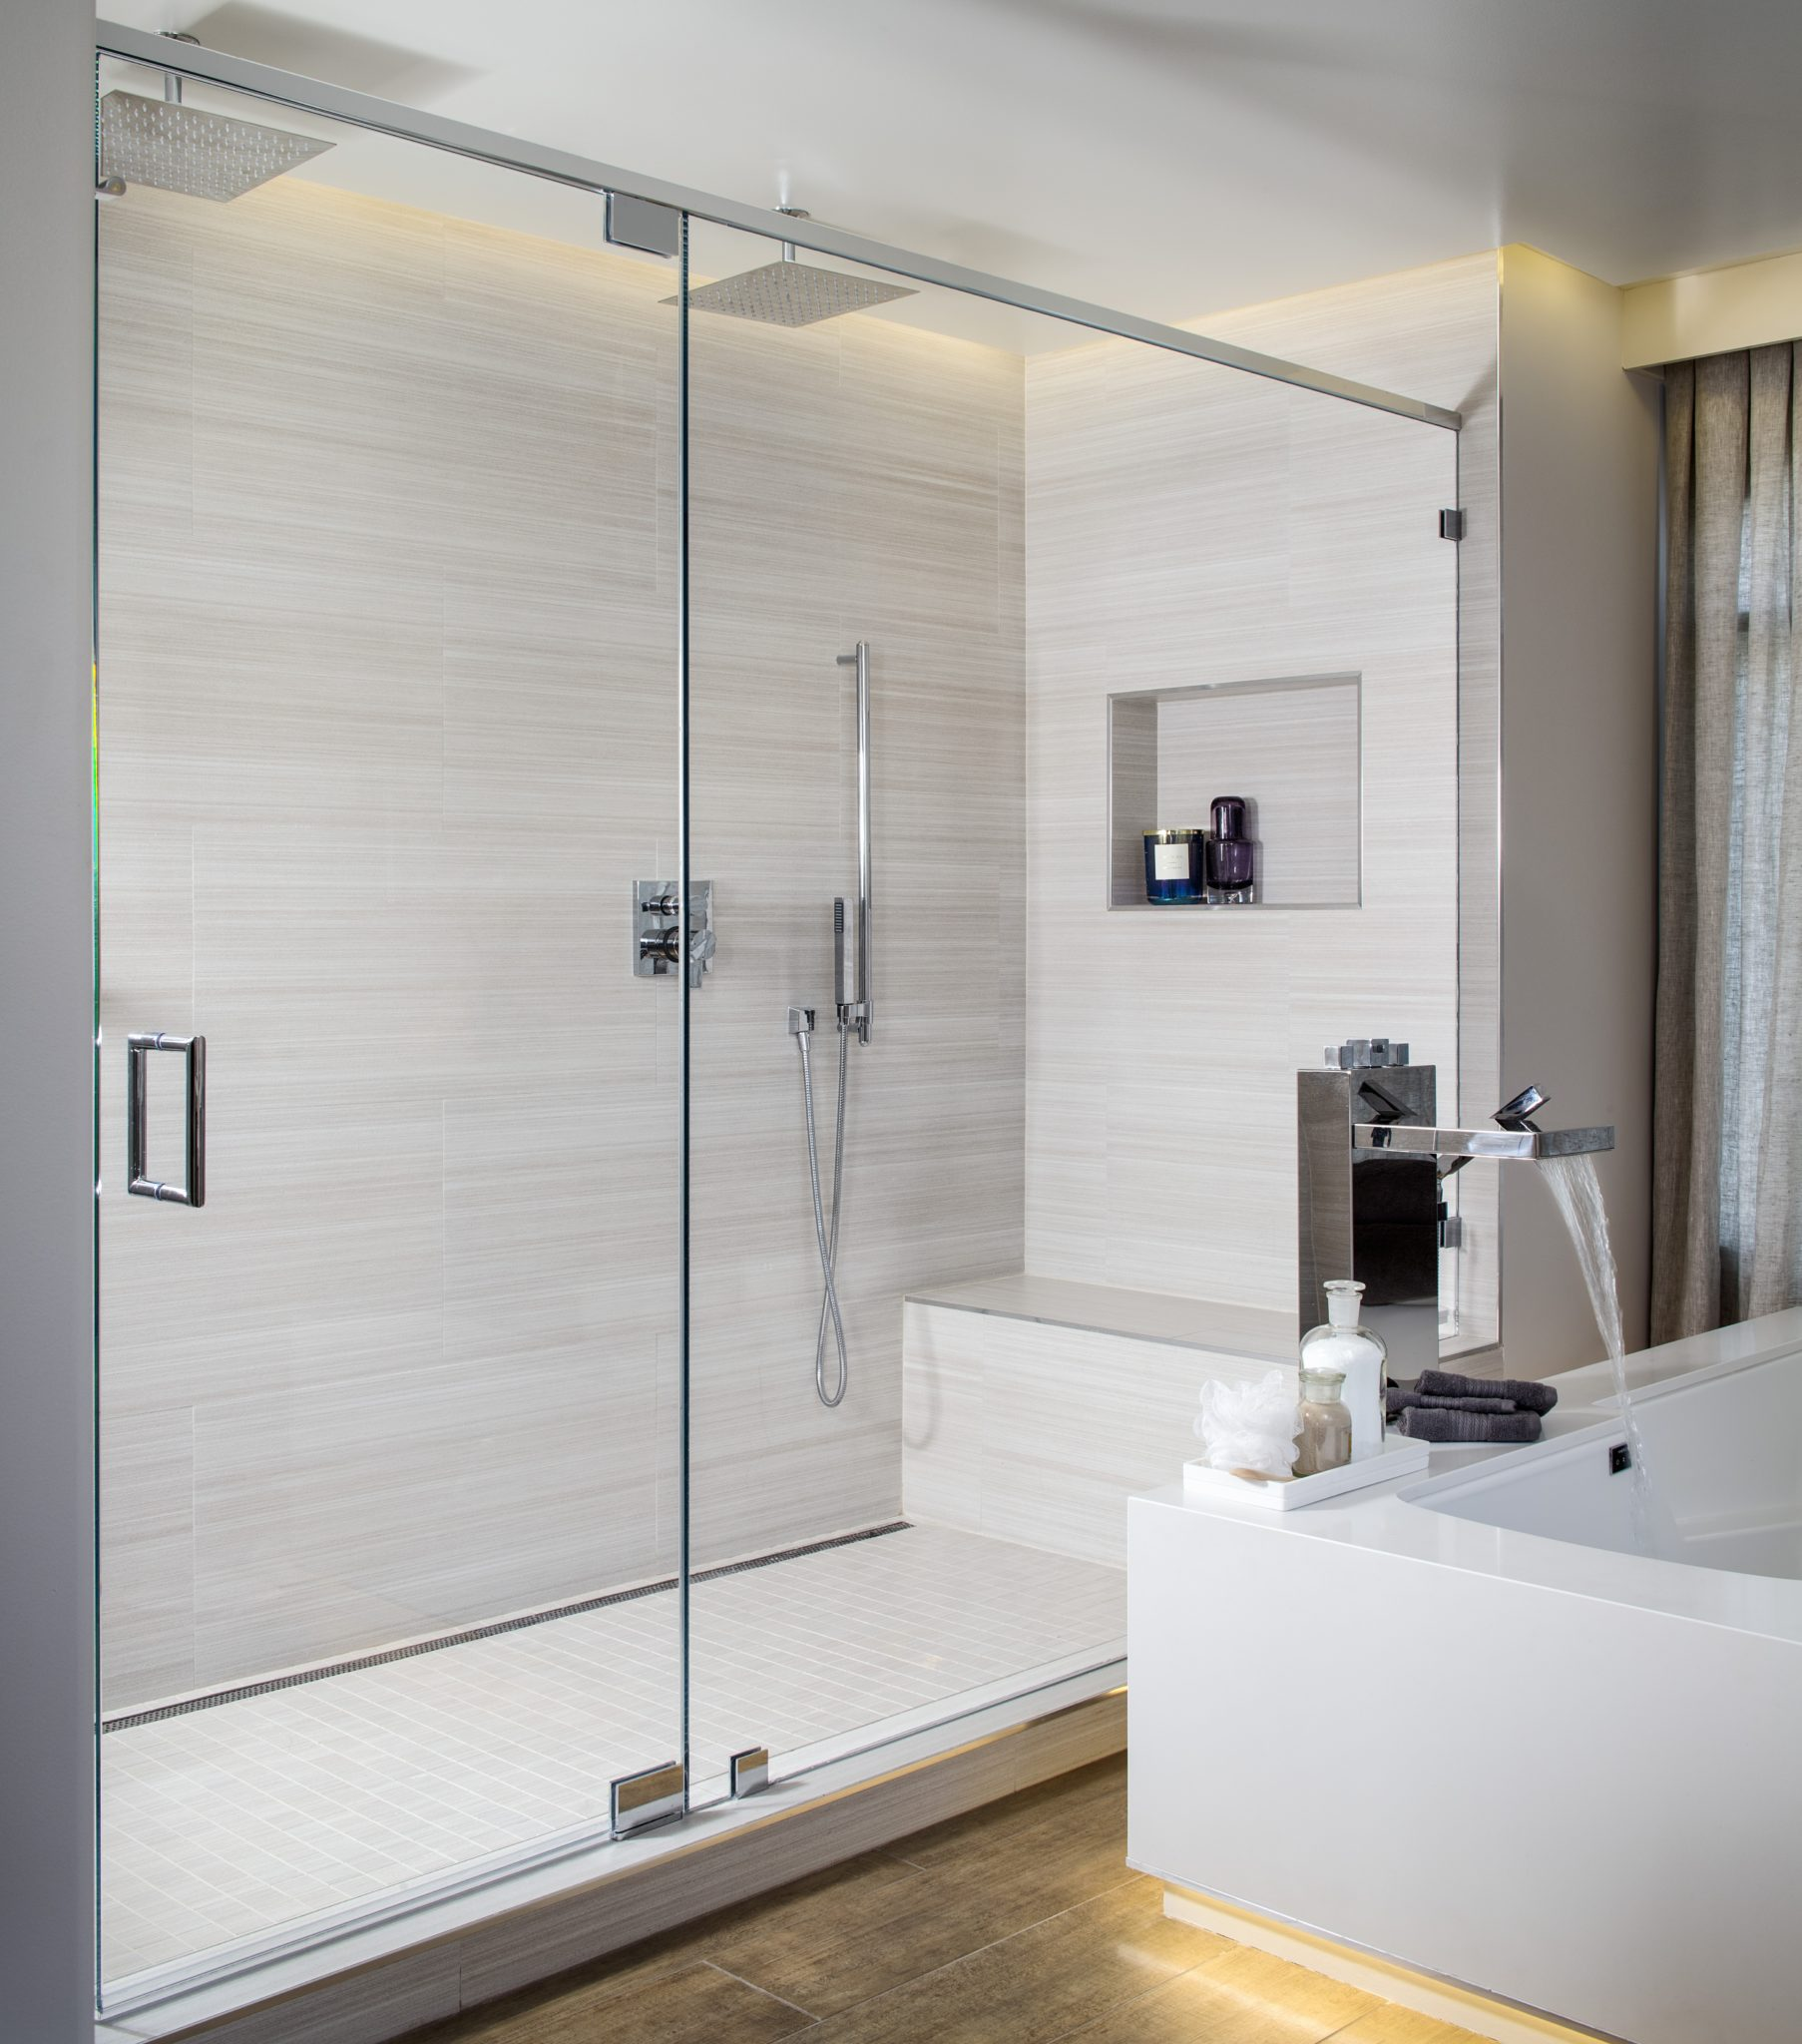 Master Bath Suite with Dropped Ceiling & Dramatic Lighting Creates Sanctuary by SUZA DESIGN